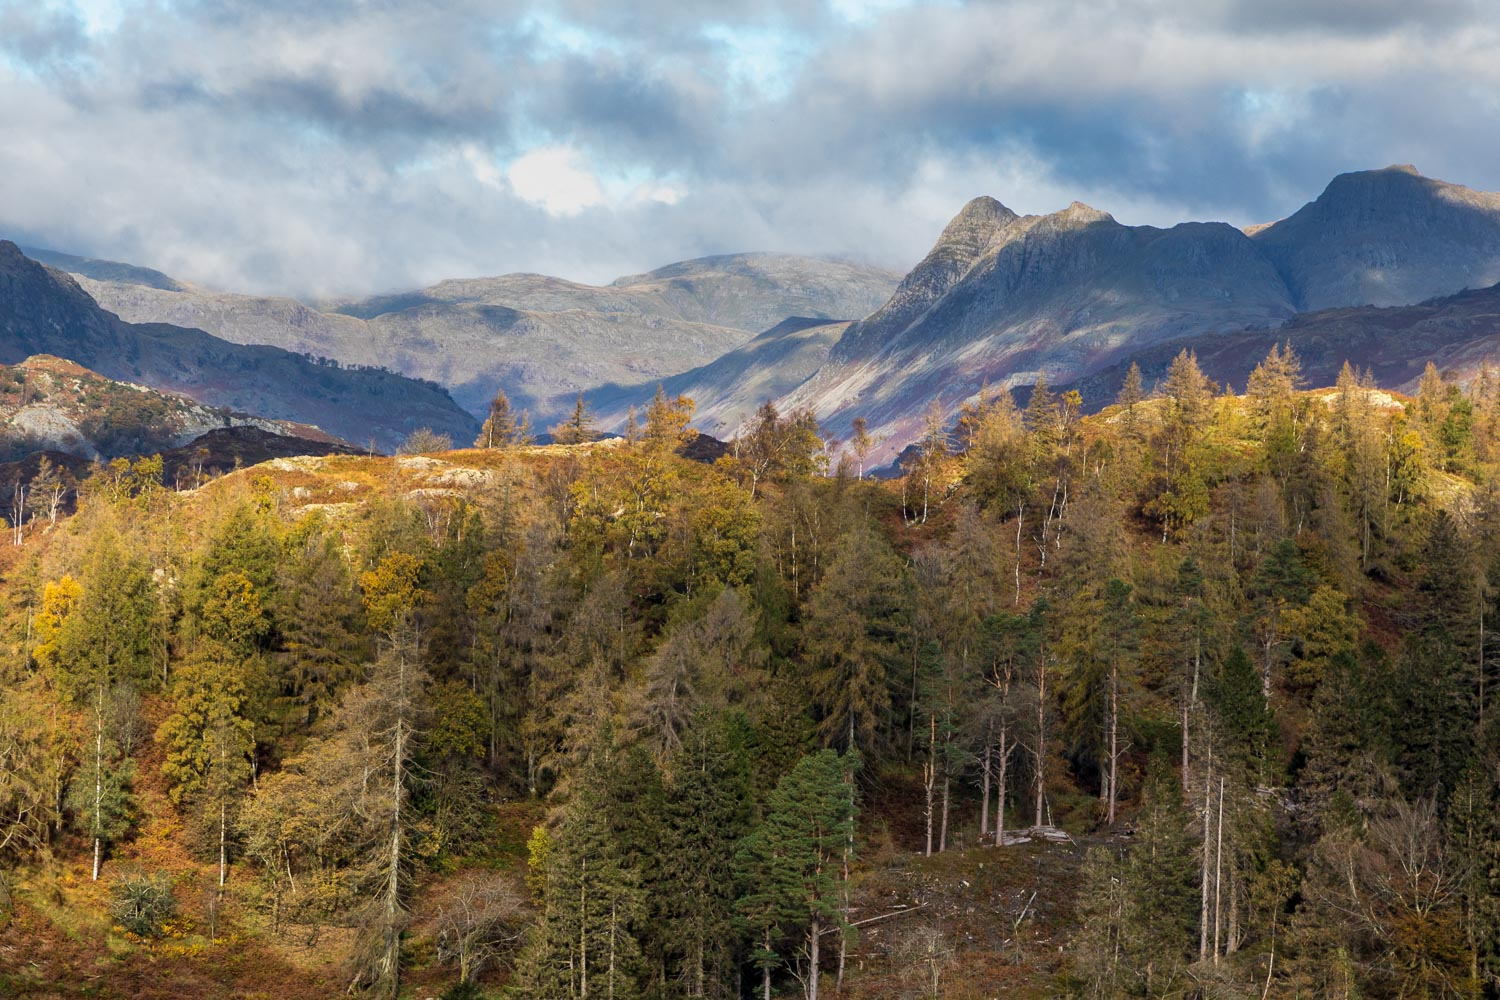 Tarn Hows view, Langdale Pikes